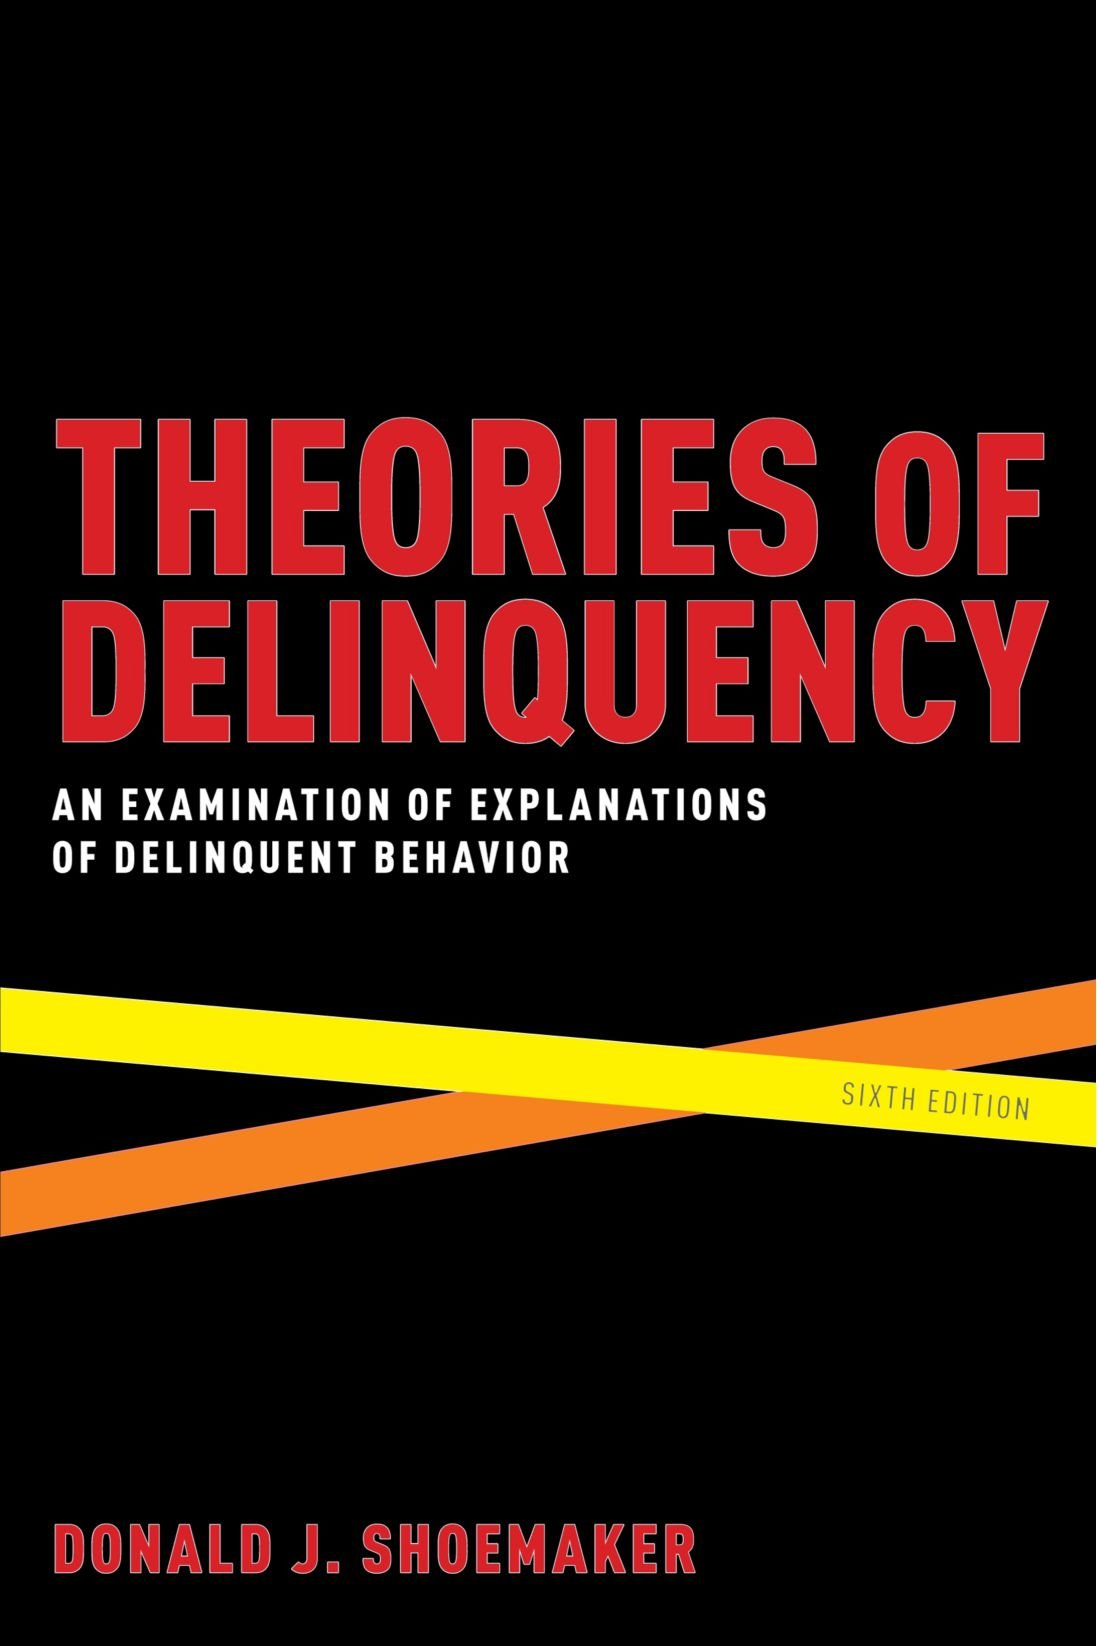 Theories of Delinquency: An Examination of Explanations of Delinquent Behavior free download